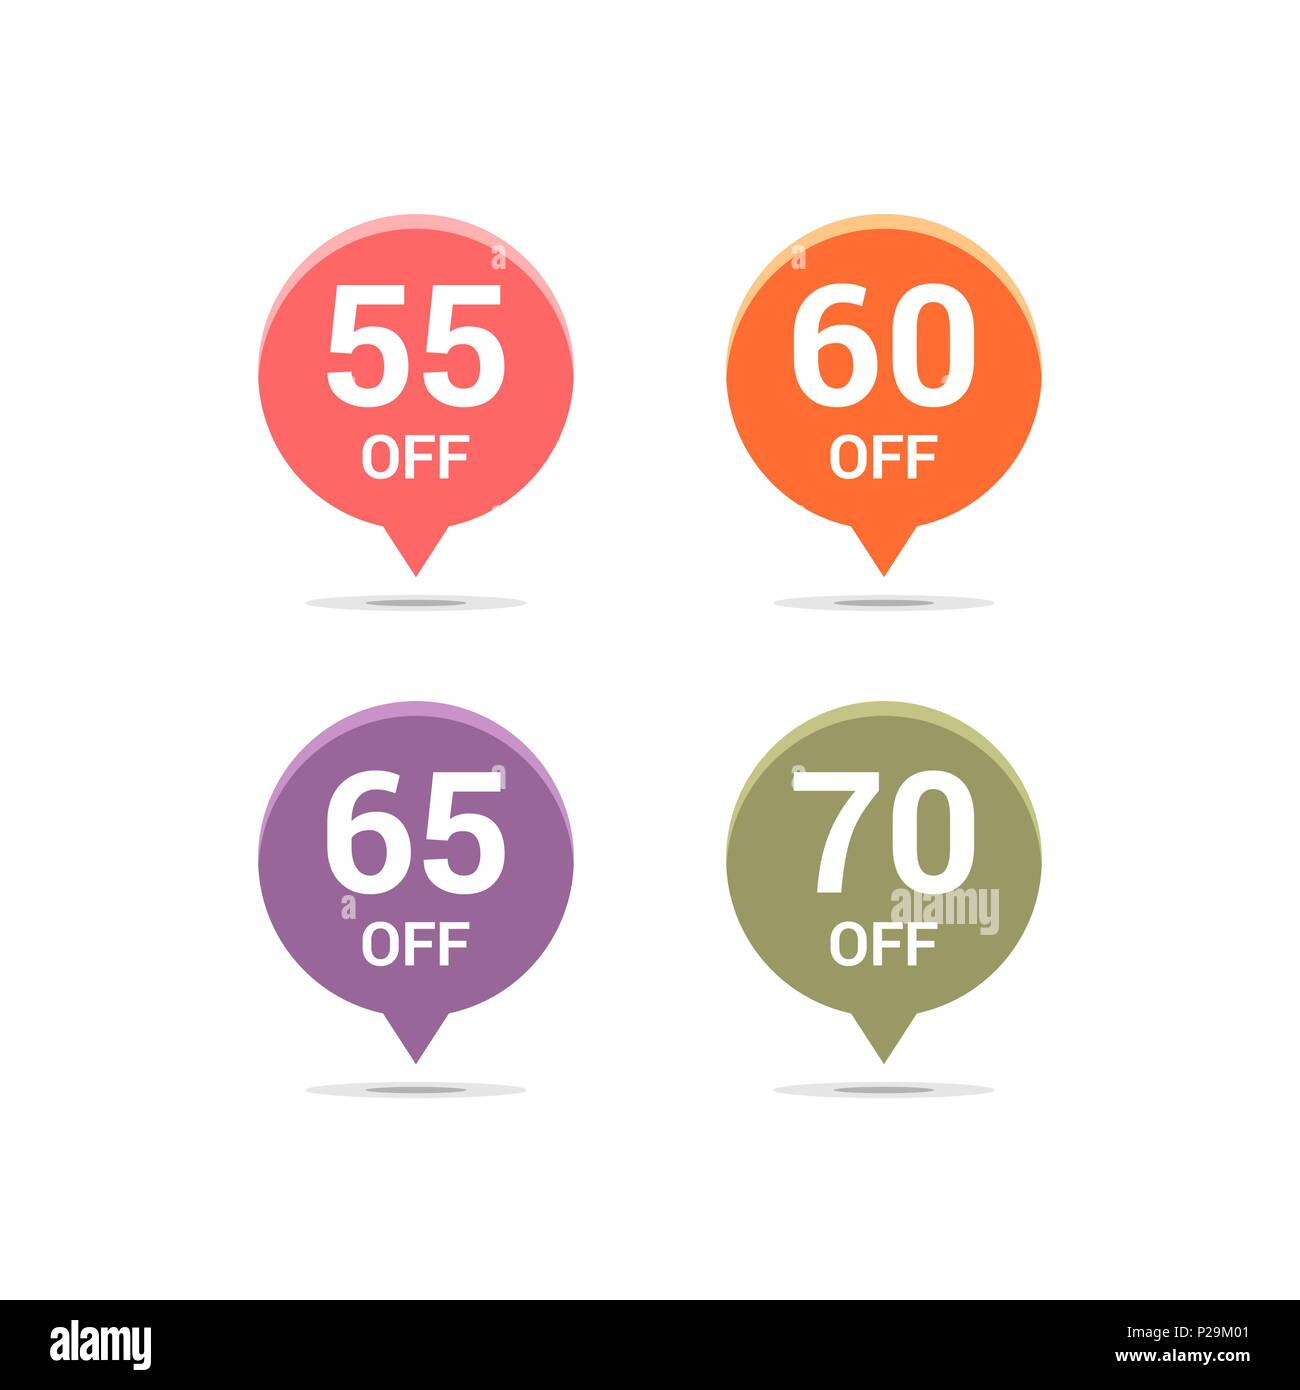 Sale discount icons. Special offer price signs. 55, 60, 65 and 70 percent off reduction symbols. Colored vector flat elements badges - Stock Image